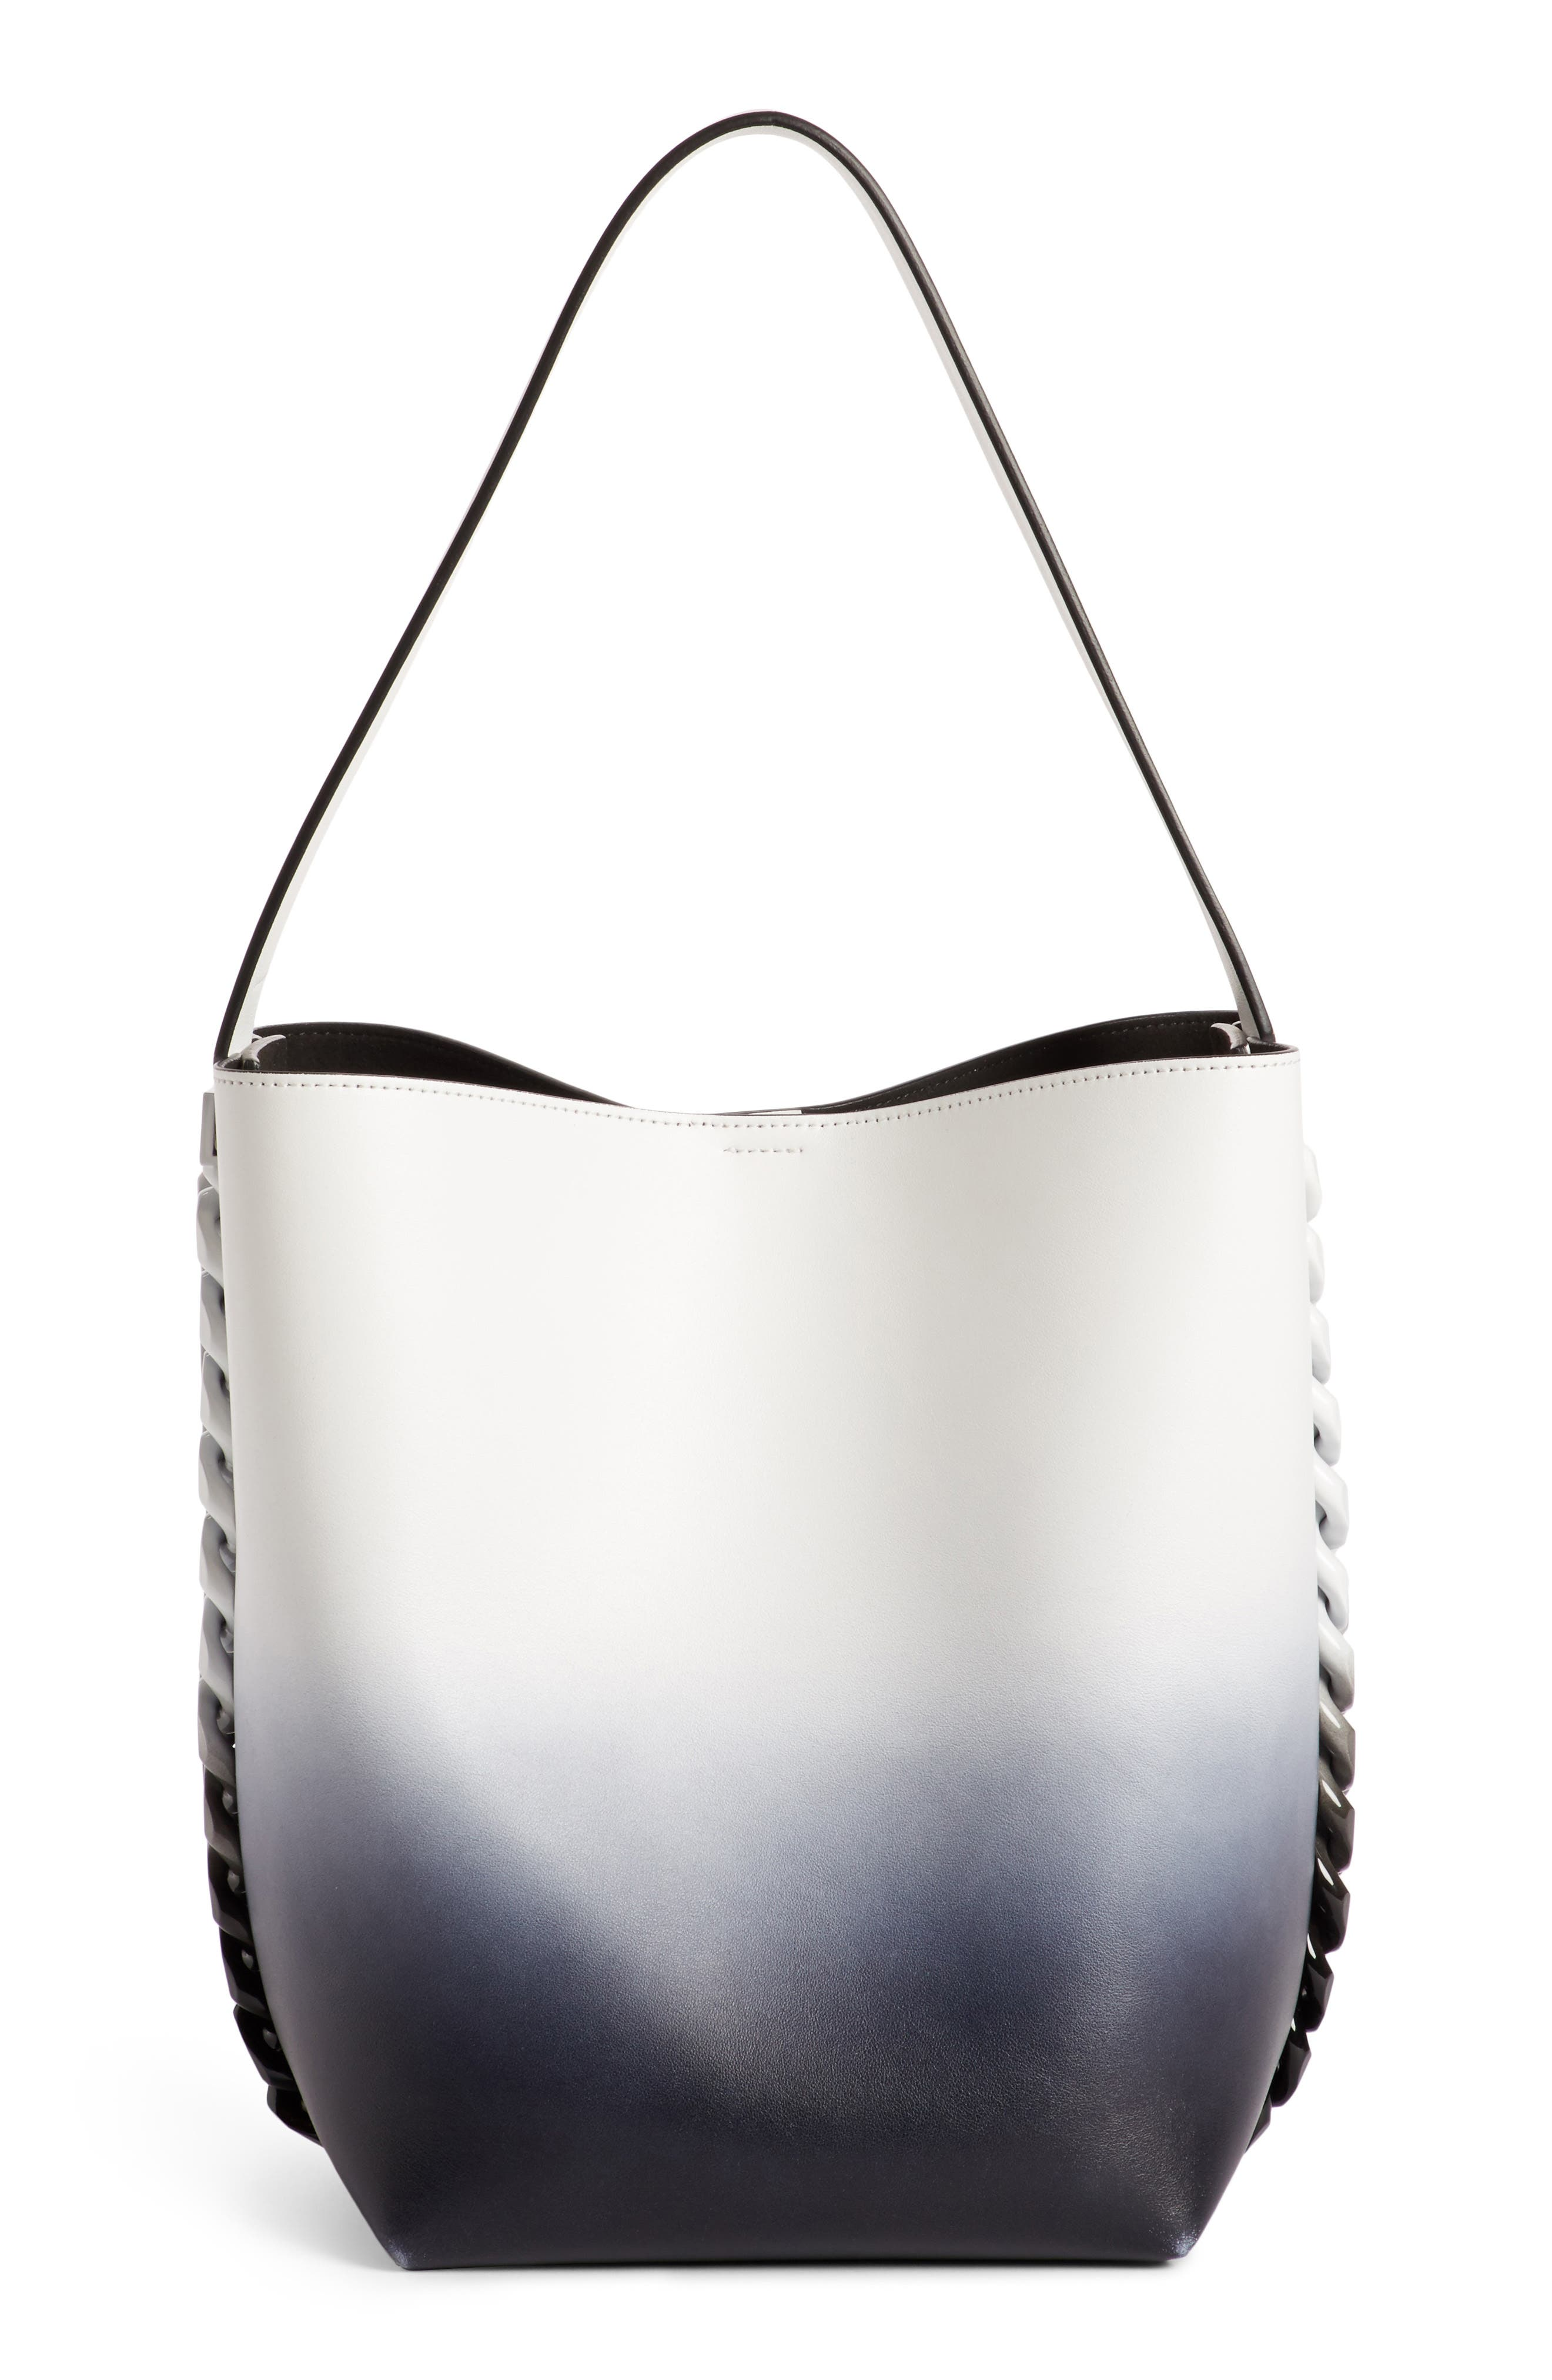 Givenchy Infinity Dégradé Calfskin Bucket Bag